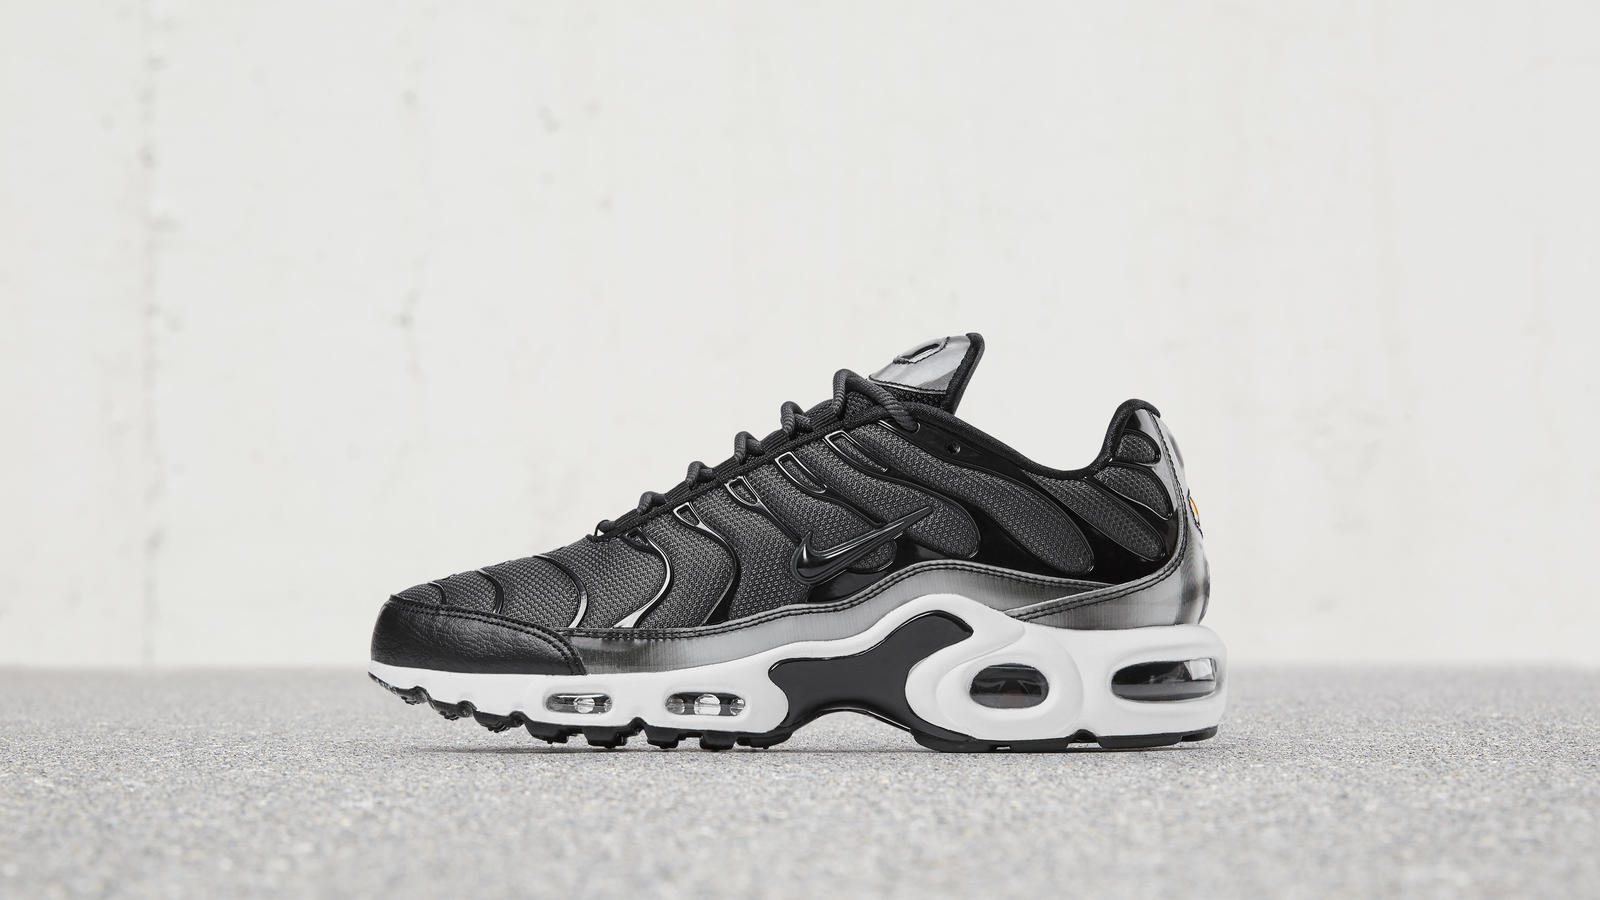 d59a1574966 Nike Air Max Plus - Nike News